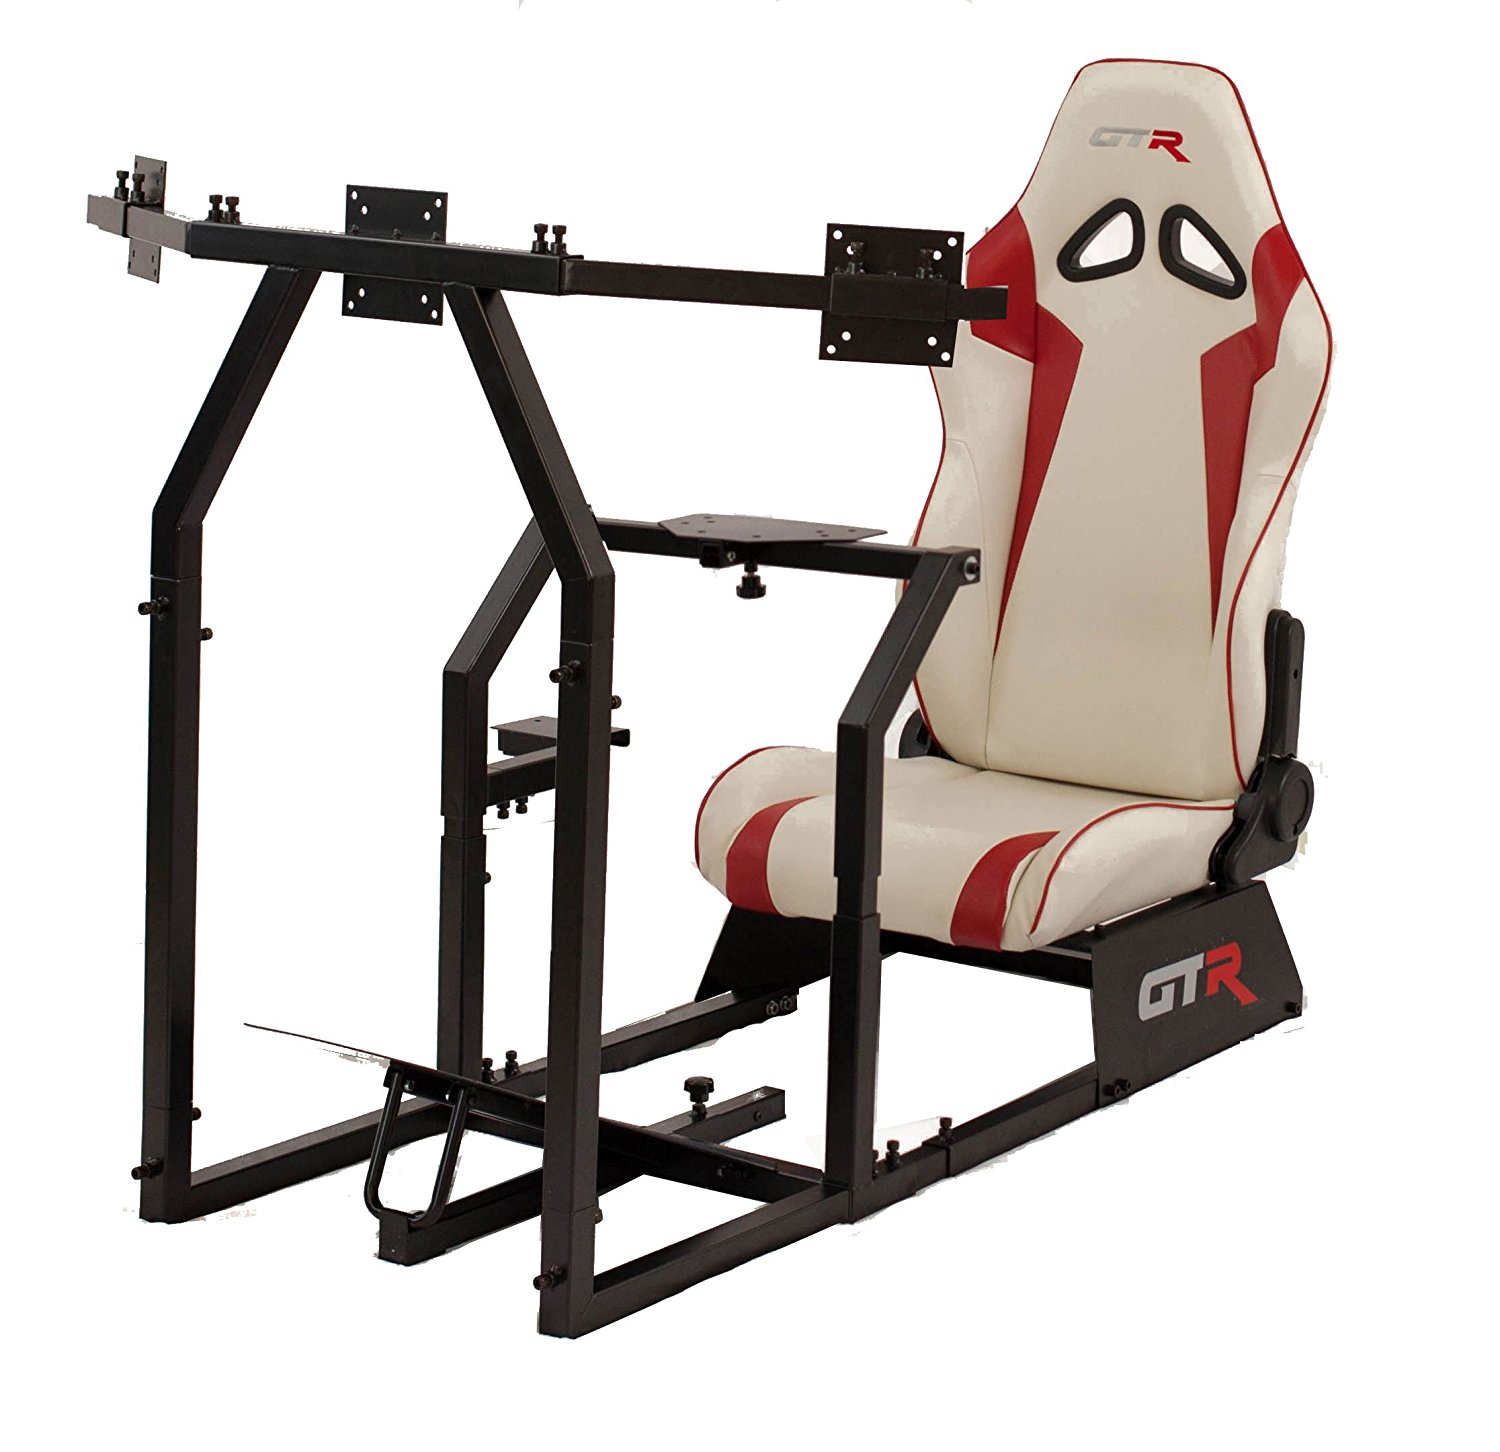 GTR Racing Simulator GTAF-BLK-S105LWHTRD - GTA-F Model (Black) Triple or Single Monitor Stand with White/Red Adjustable Leatherette Seat, Racing Simulator Cockpit gaming chair Single Monitor Stand